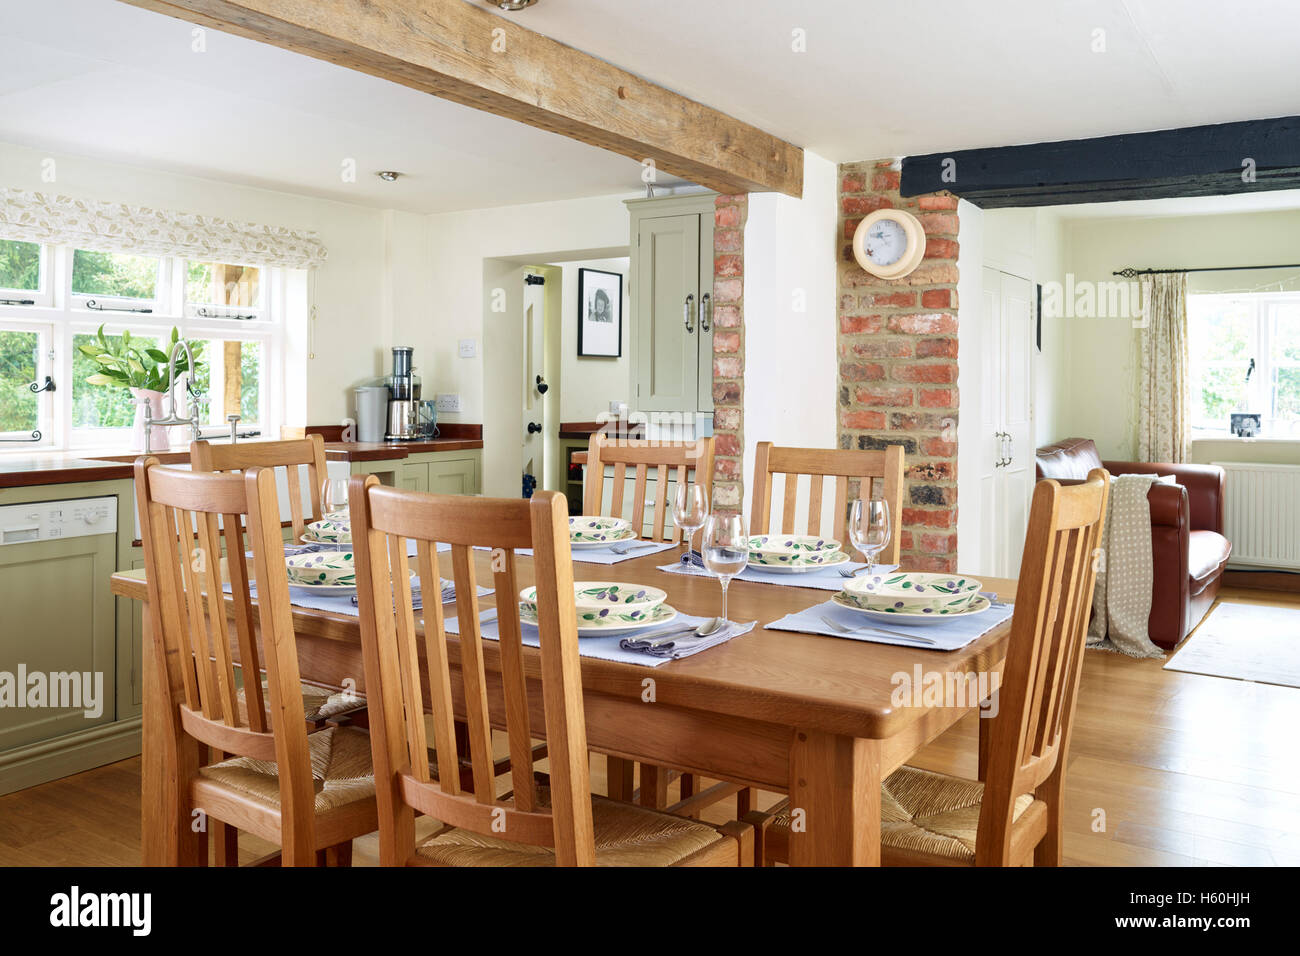 A country kitchen, dining area with a table dressed for ...